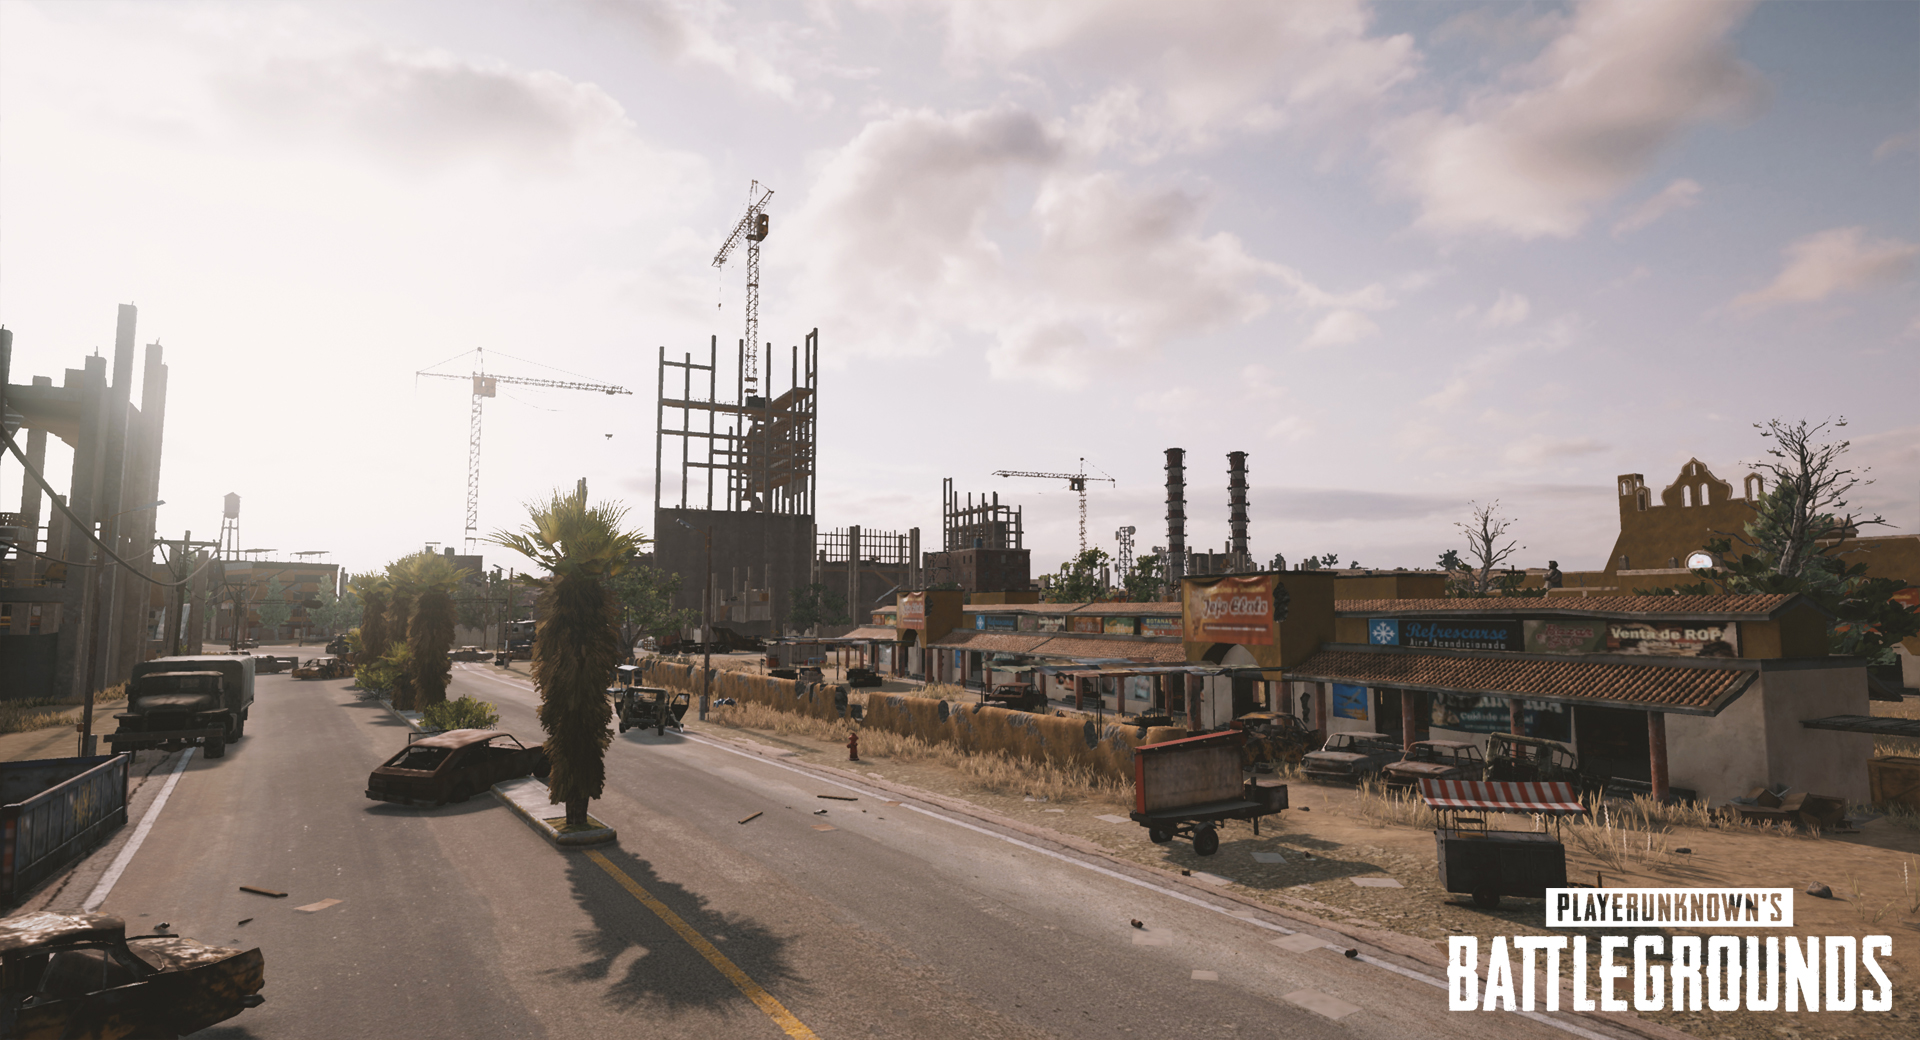 Pubg Integrated Graphics: The R45 Revolver Is The Newest Weapon In PUBG's Desert Map